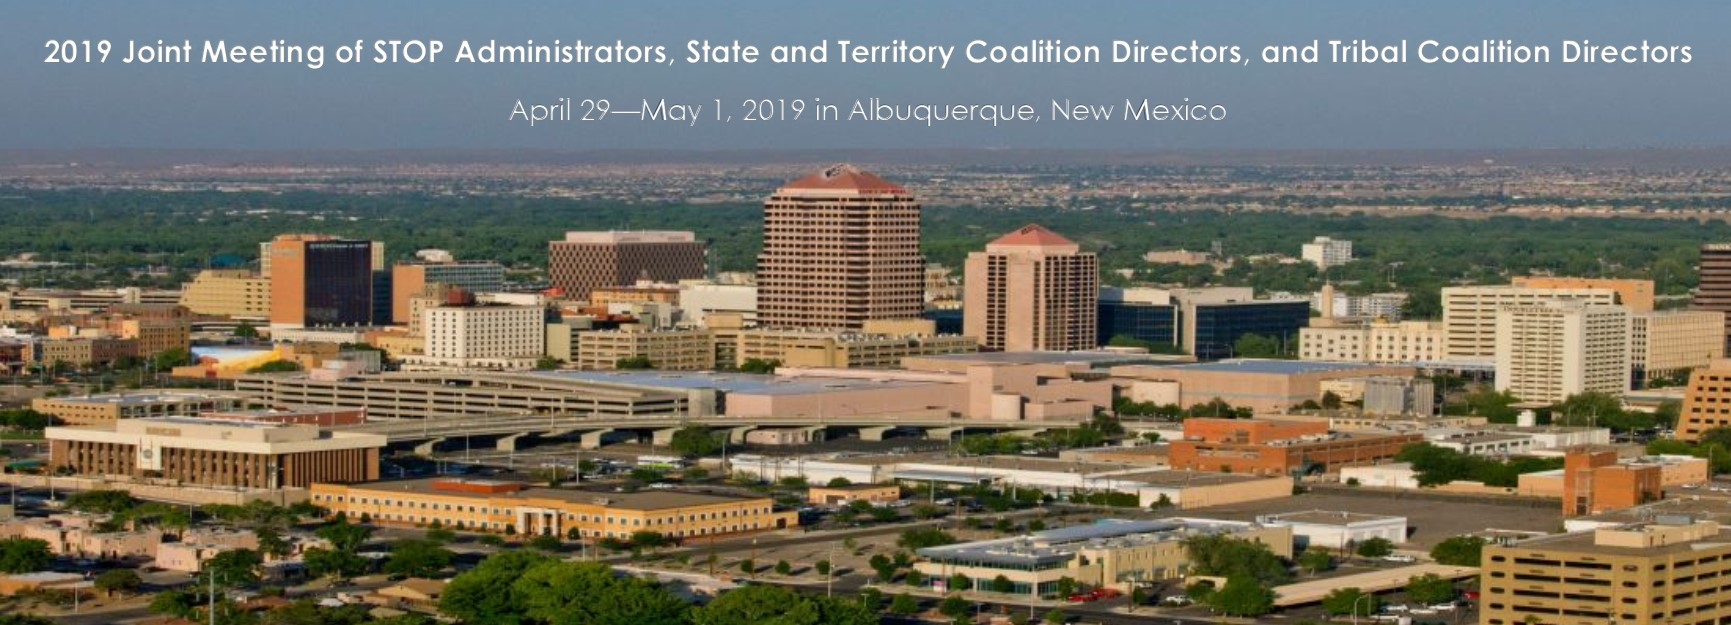 2019 Joint Meeting of STOP Administrators, State and Territory Coalition Directors, and Tribal Coalition Directors